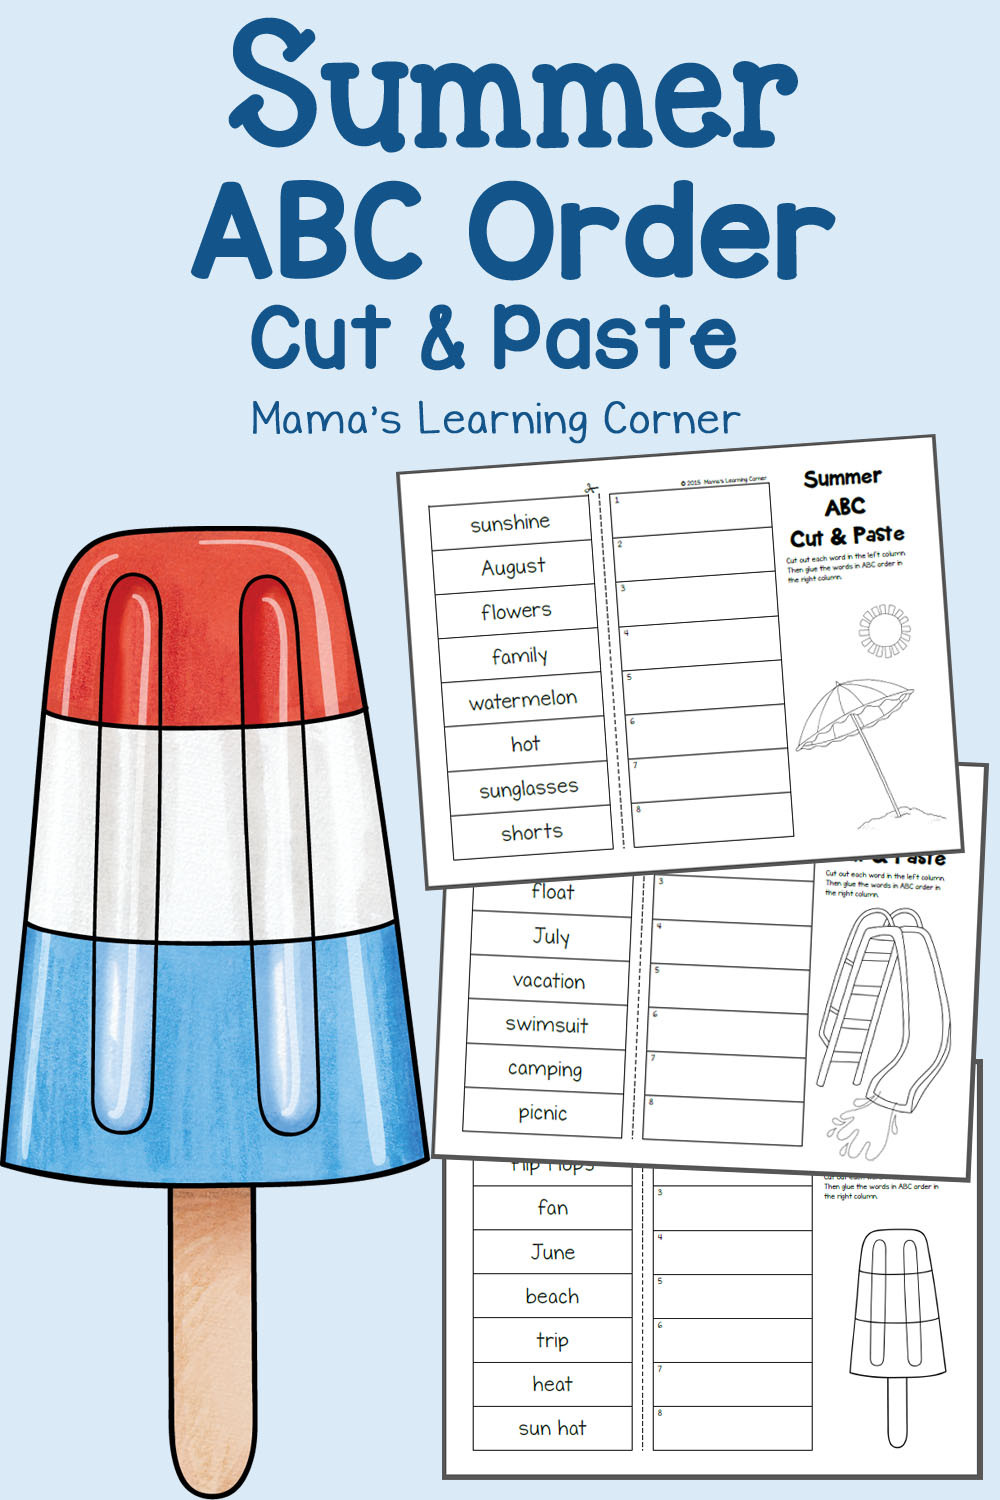 Printable Abc order Worksheets Summer Cut and Paste Abc order Worksheets Mamas Learning